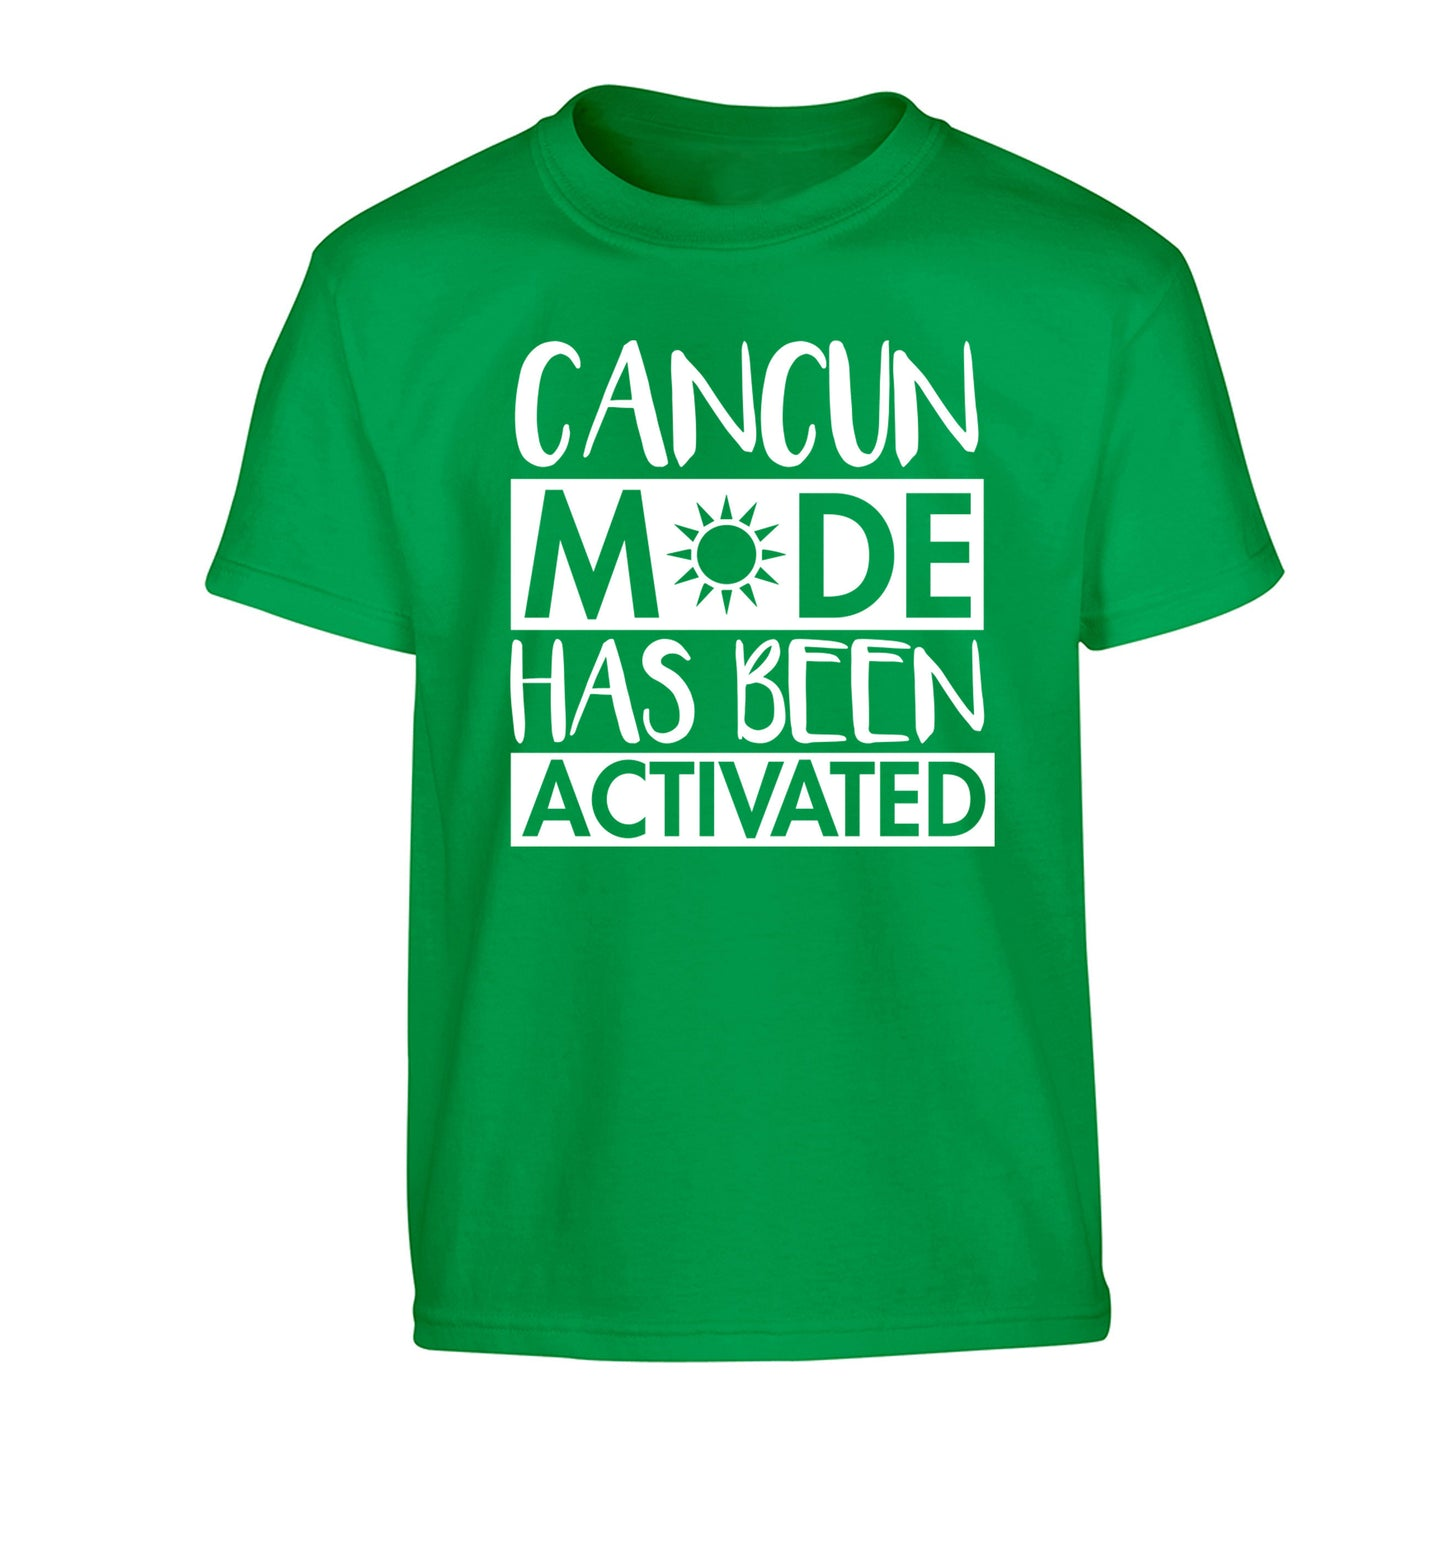 Cancun mode has been activated Children's green Tshirt 12-14 Years